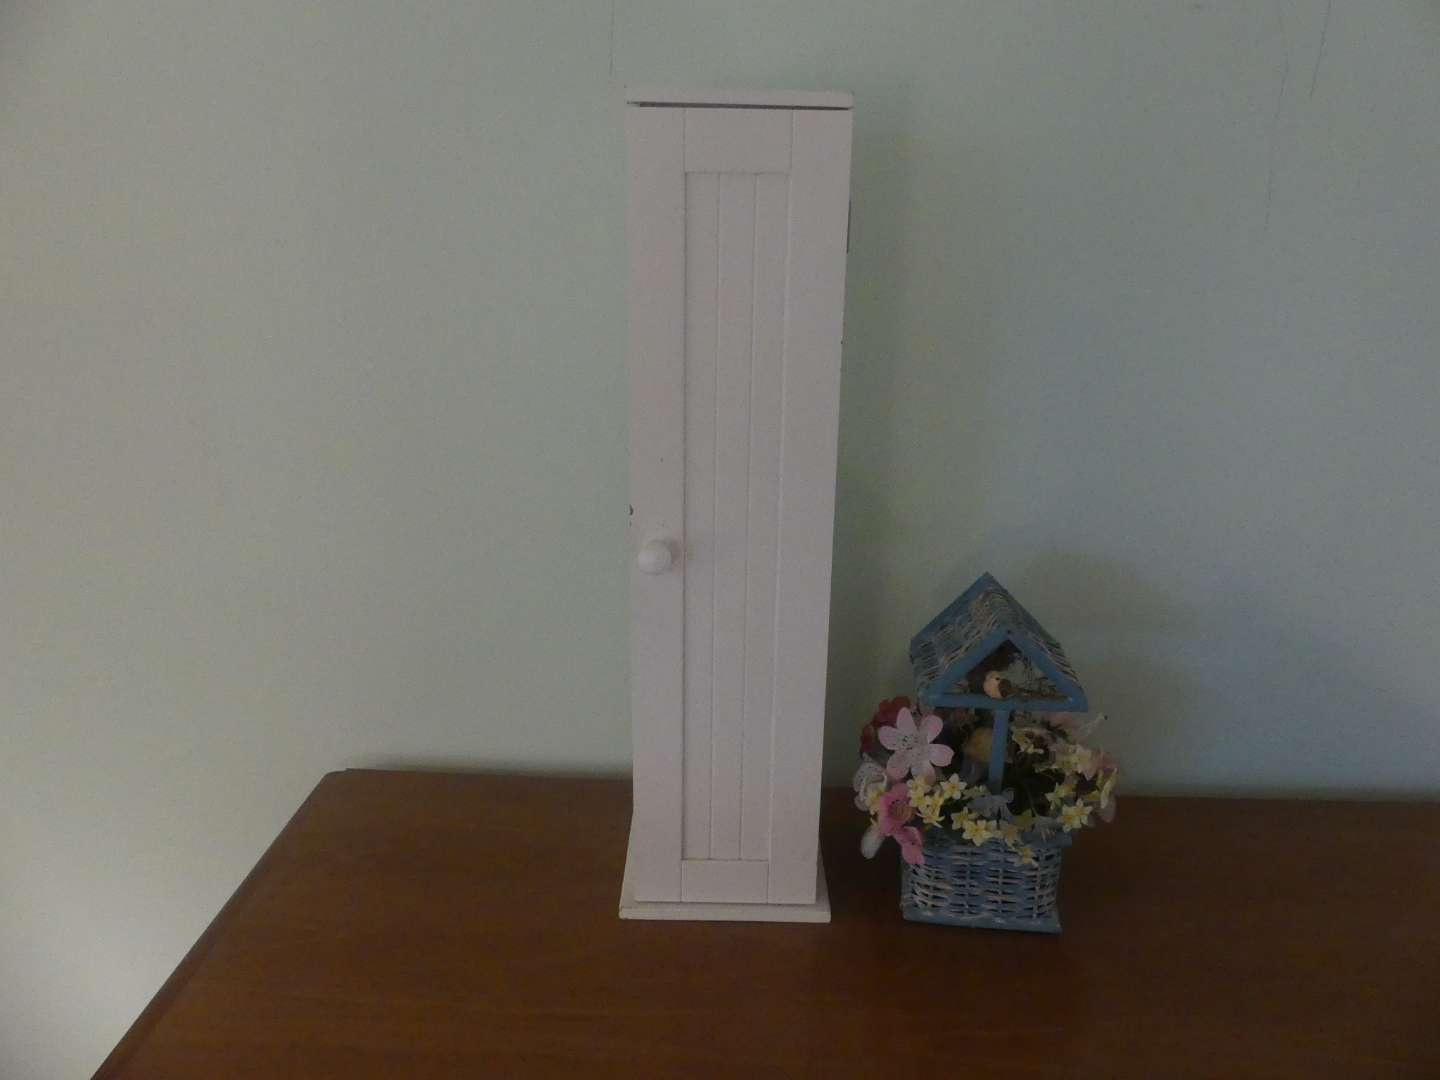 Lot #112 Bathroom Organizer for Tissues and Rolls of TP with Wishing Well Decoration